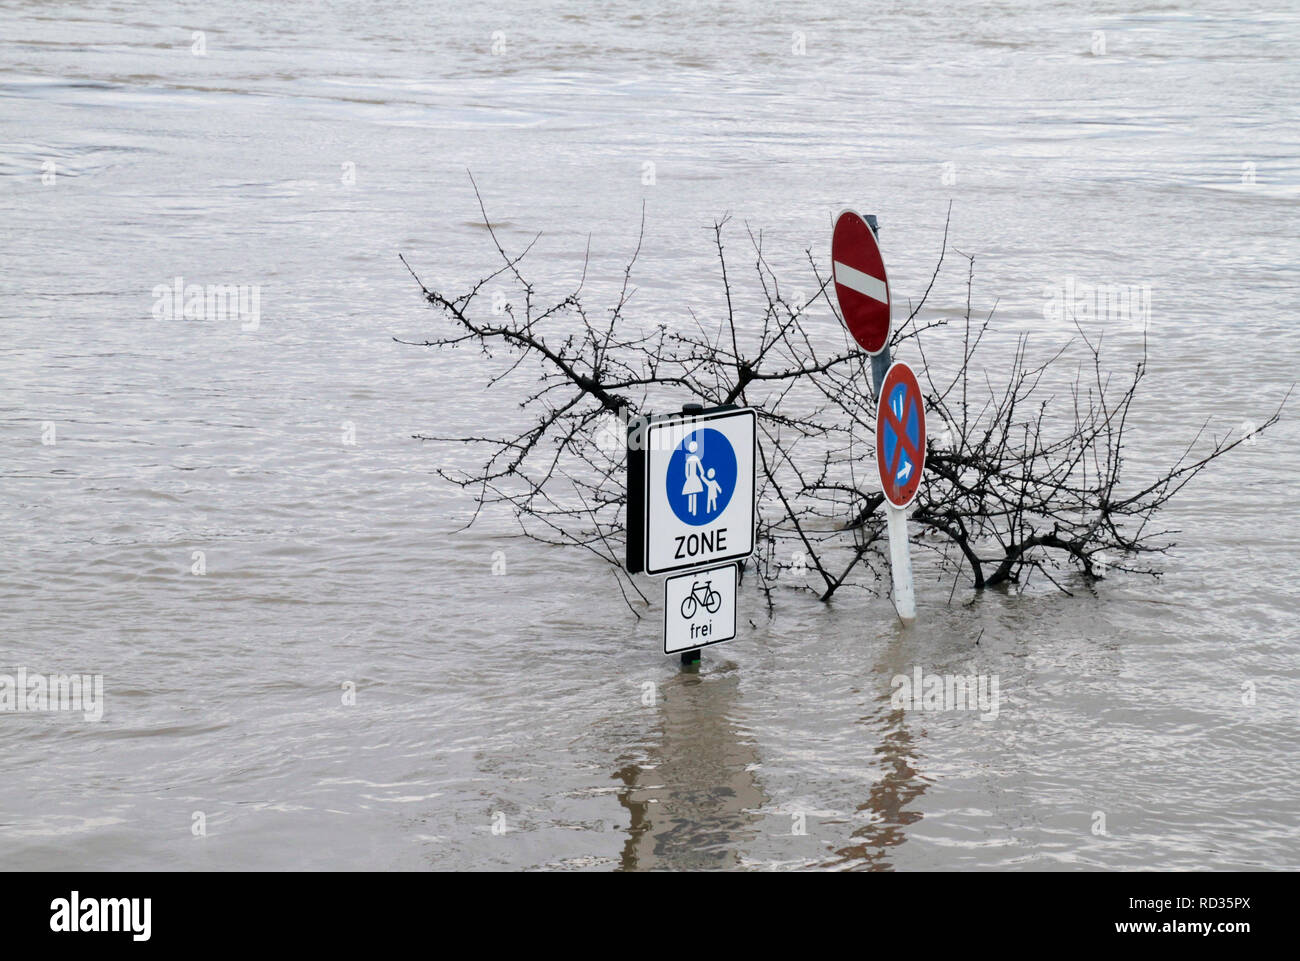 Extreme weather: Flooded pedestrian zone in Cologne, Germany Stock Photo